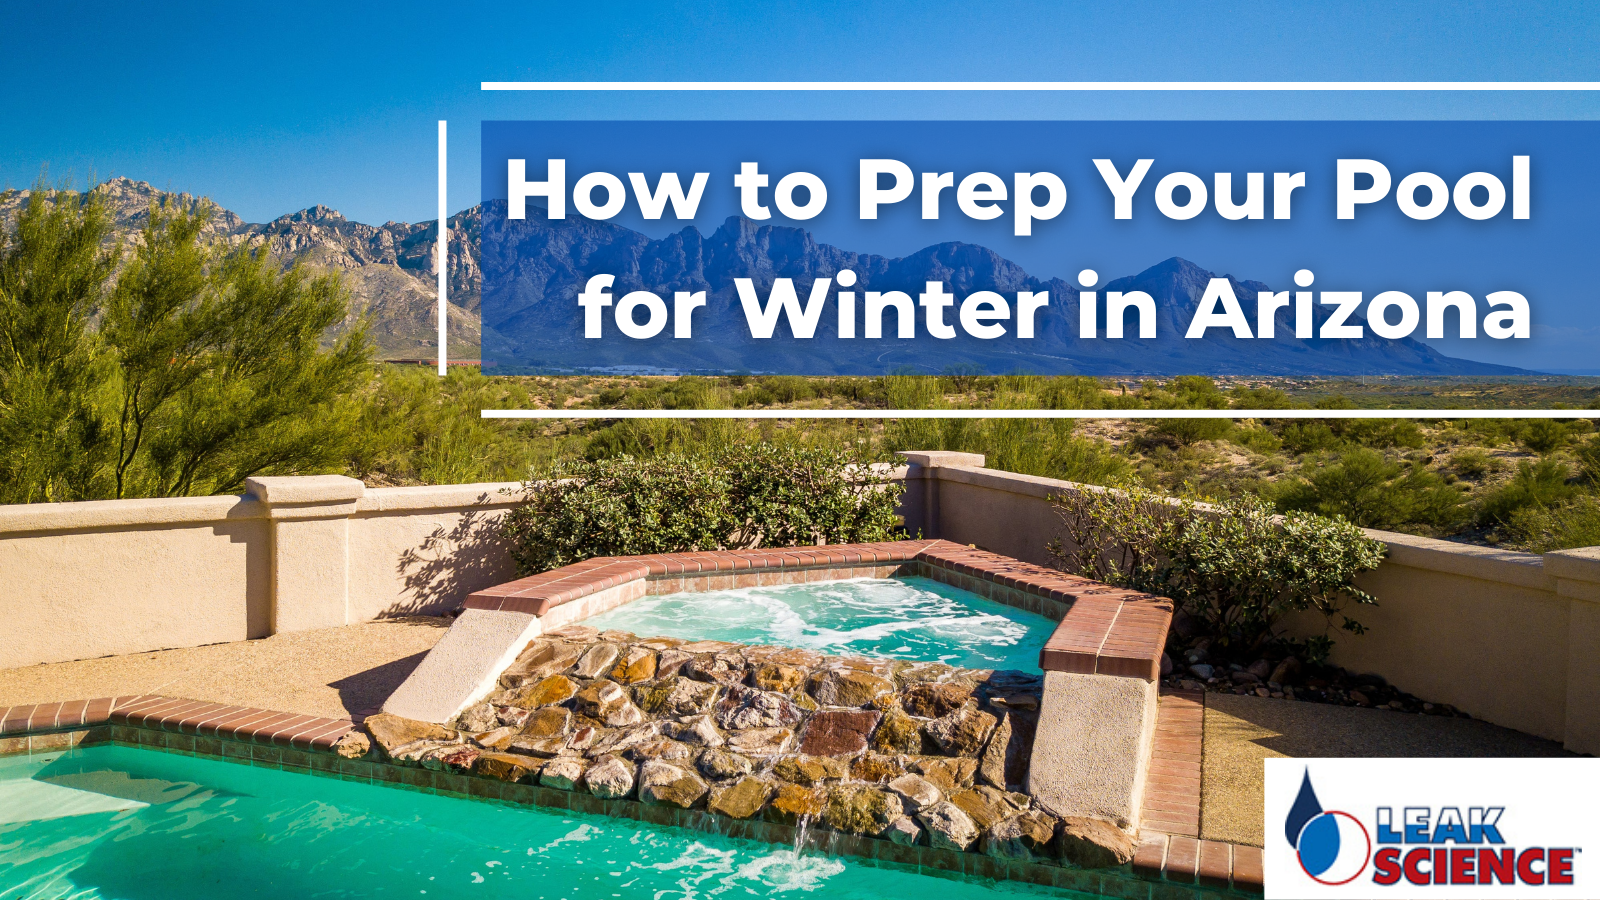 How to Prep Your Pool for Winter in Arizona